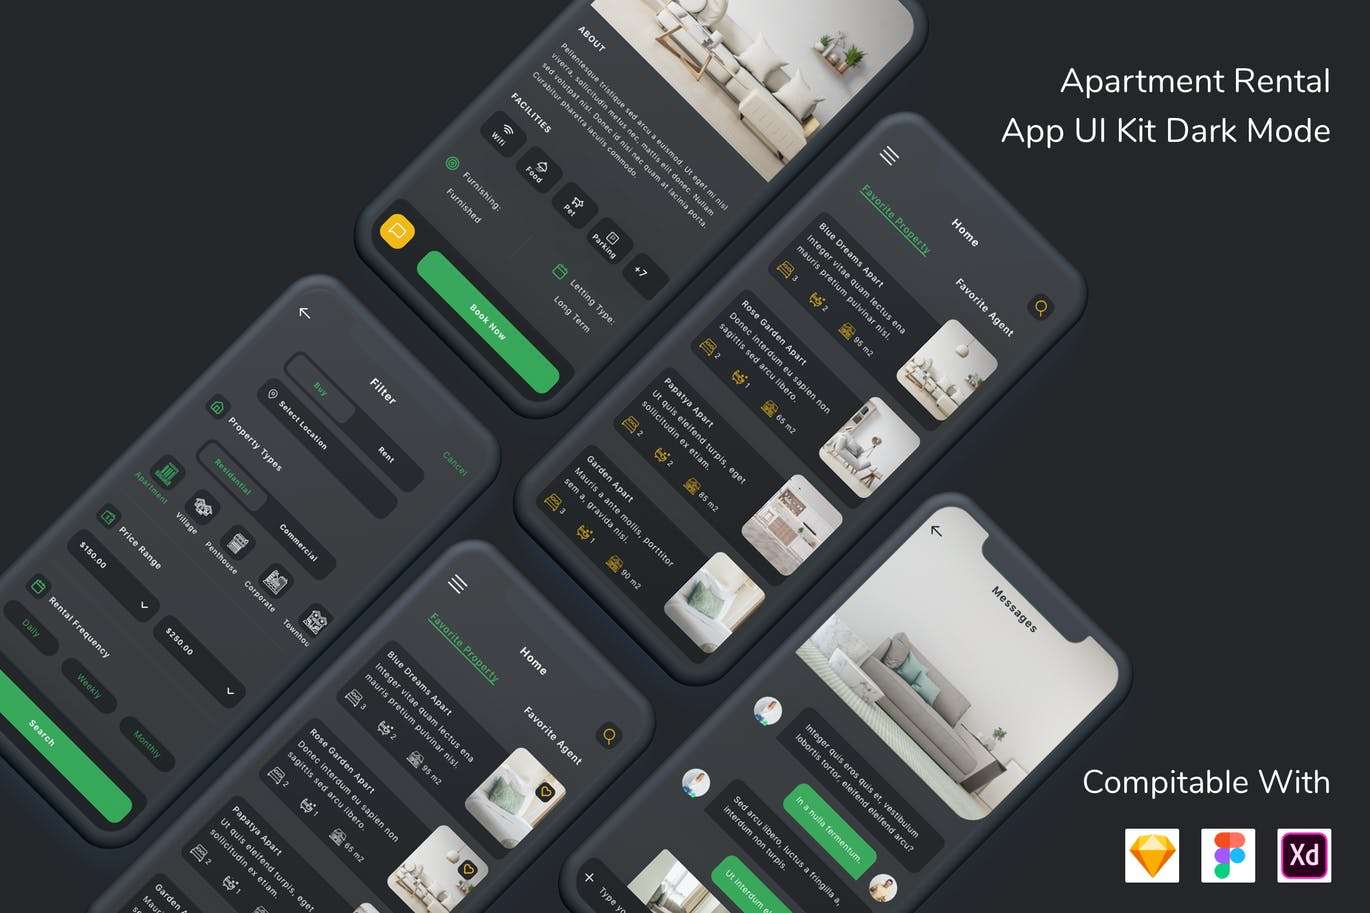 Apartment Rental App UI Kit Dark Mode